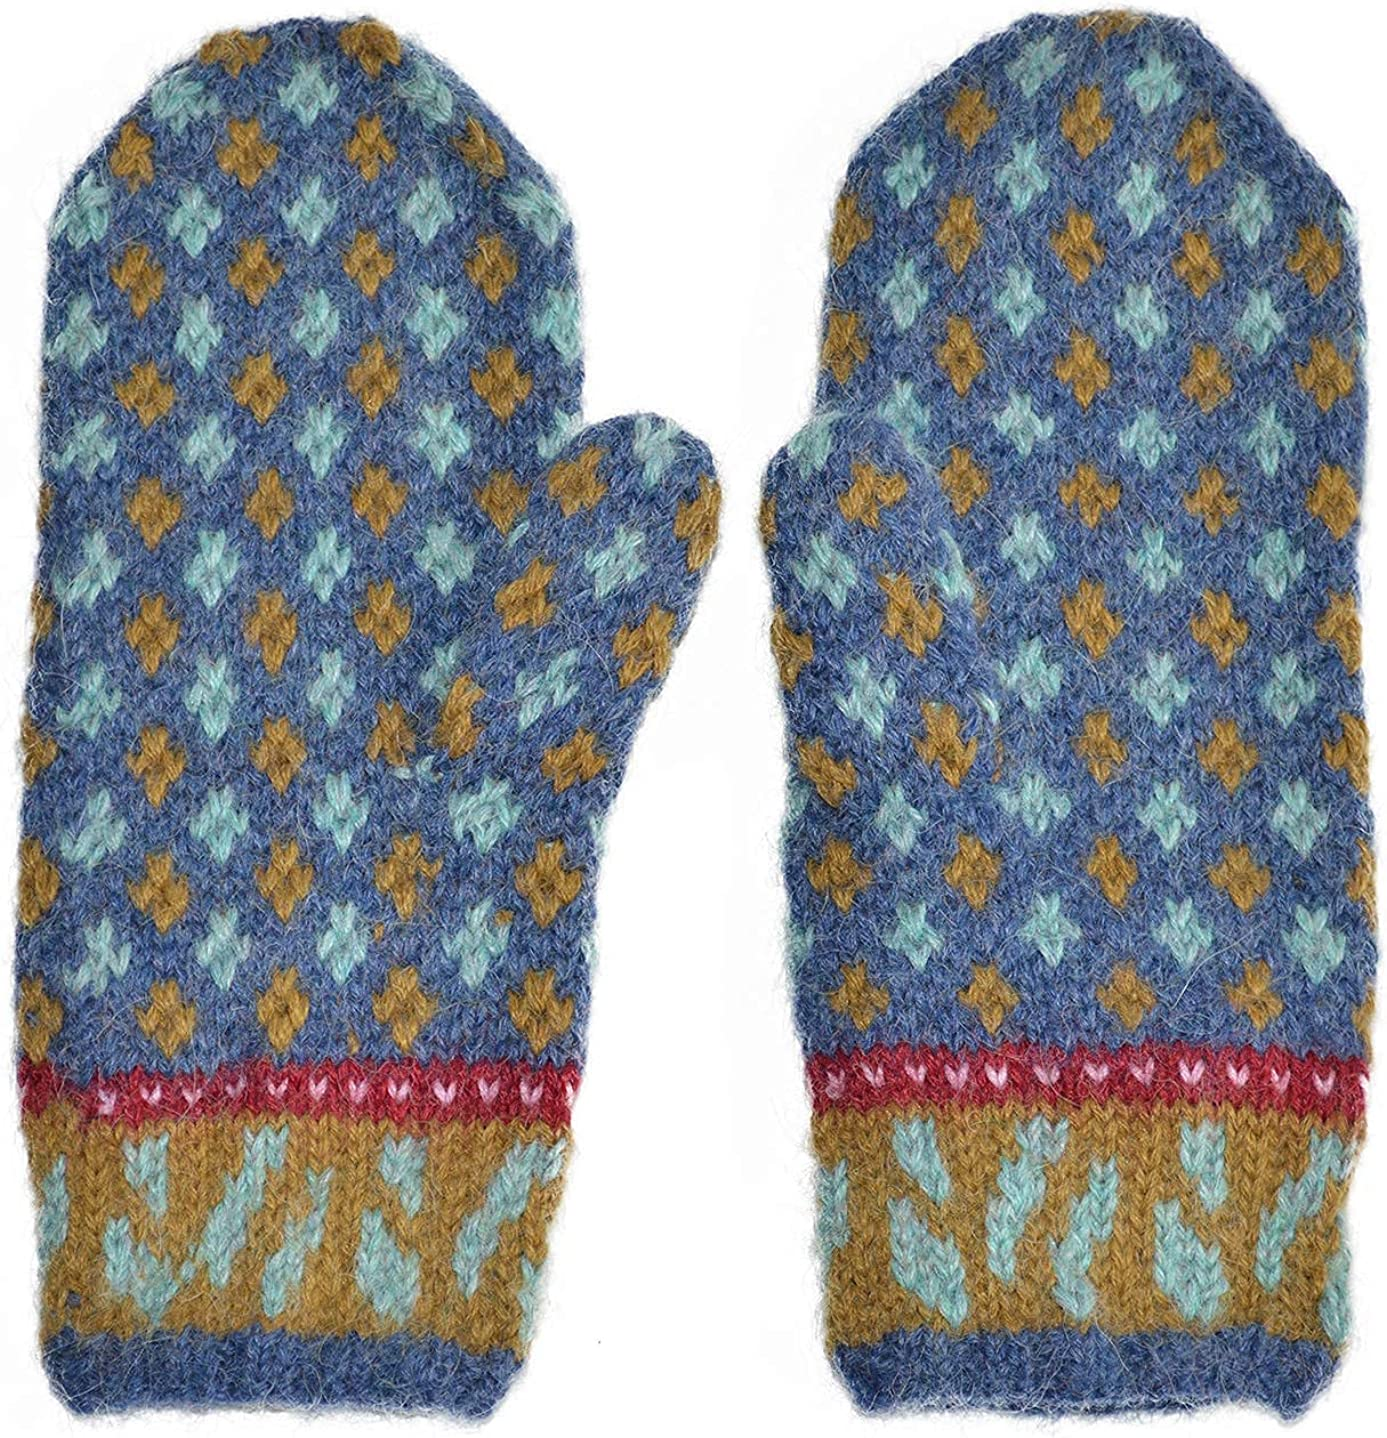 Invisible World Women's Alpaca Wool Mittens Knitted Winter Colorful Cold Weather Harumi